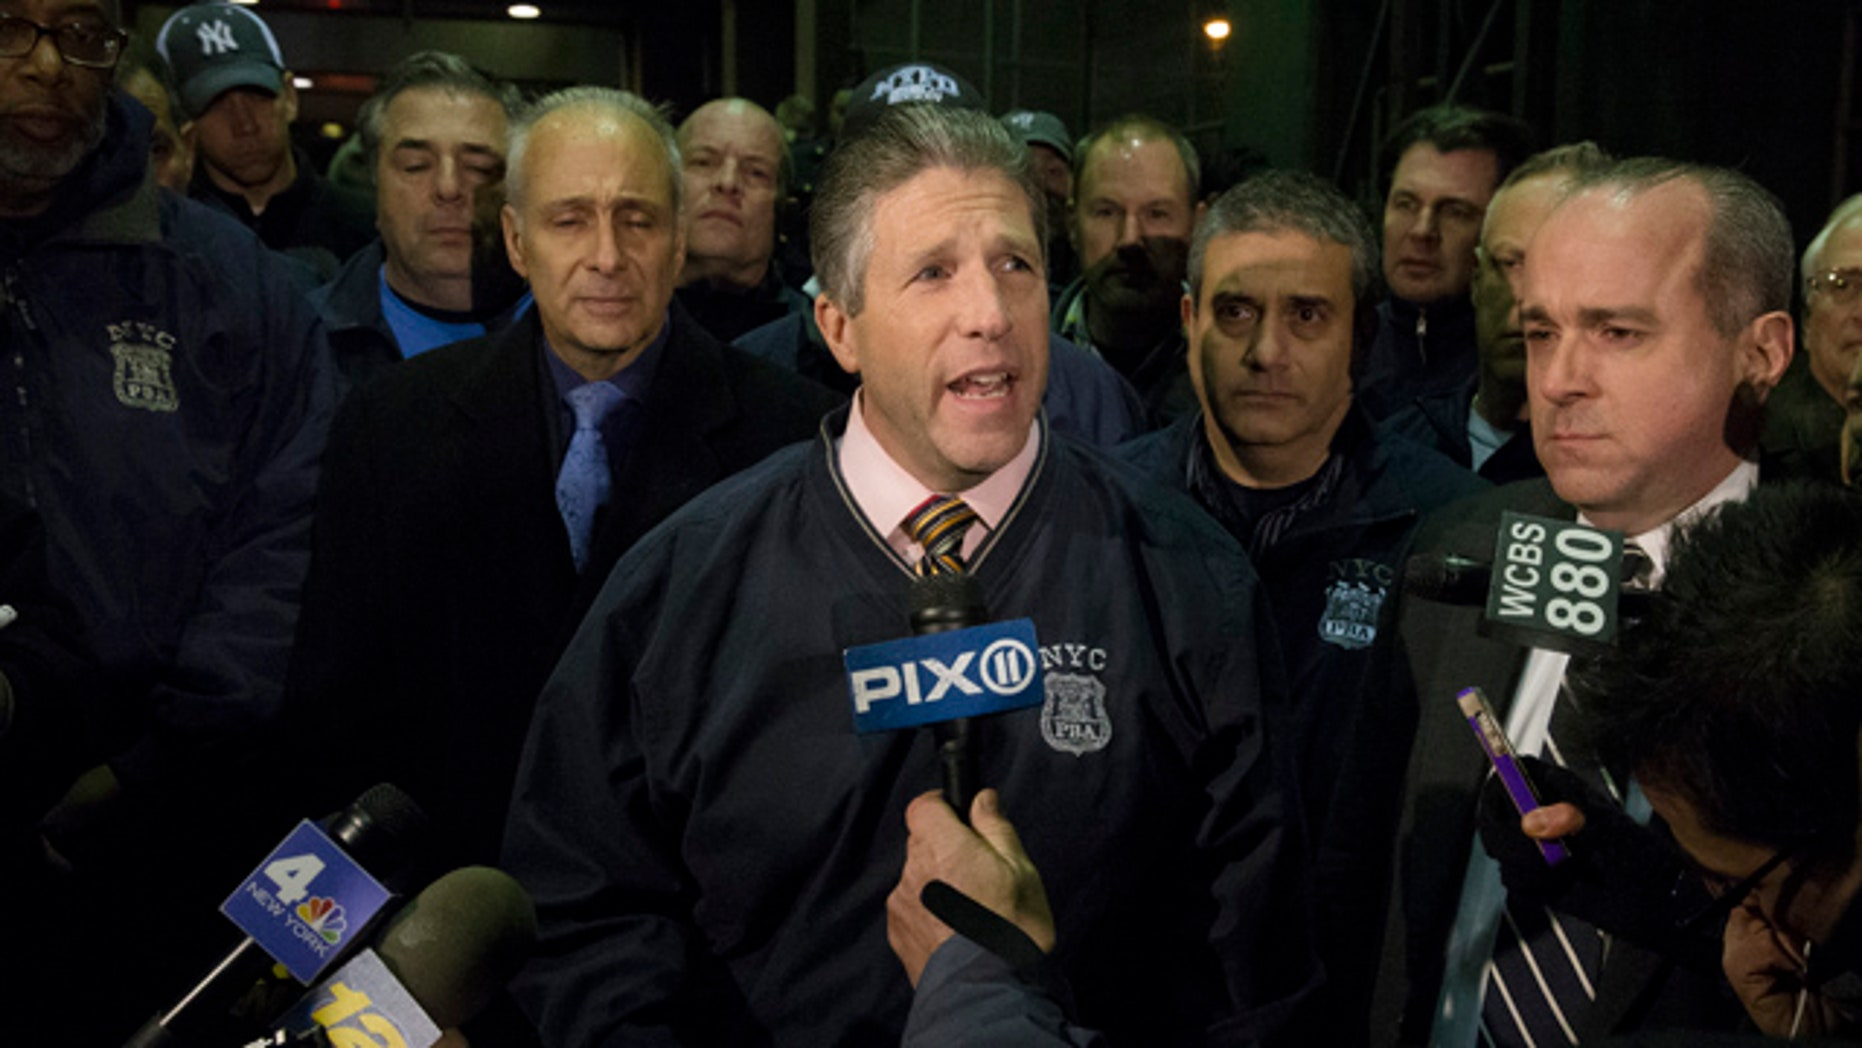 Dec. 20,2014: Patrick Lynch, head of the Patrolmen's Benevolent Association, speaks during a news conference after the bodies of two fallen NYPD police officers were transported from Woodhull Medical Center in New York. (AP Photo/John Minchillo)